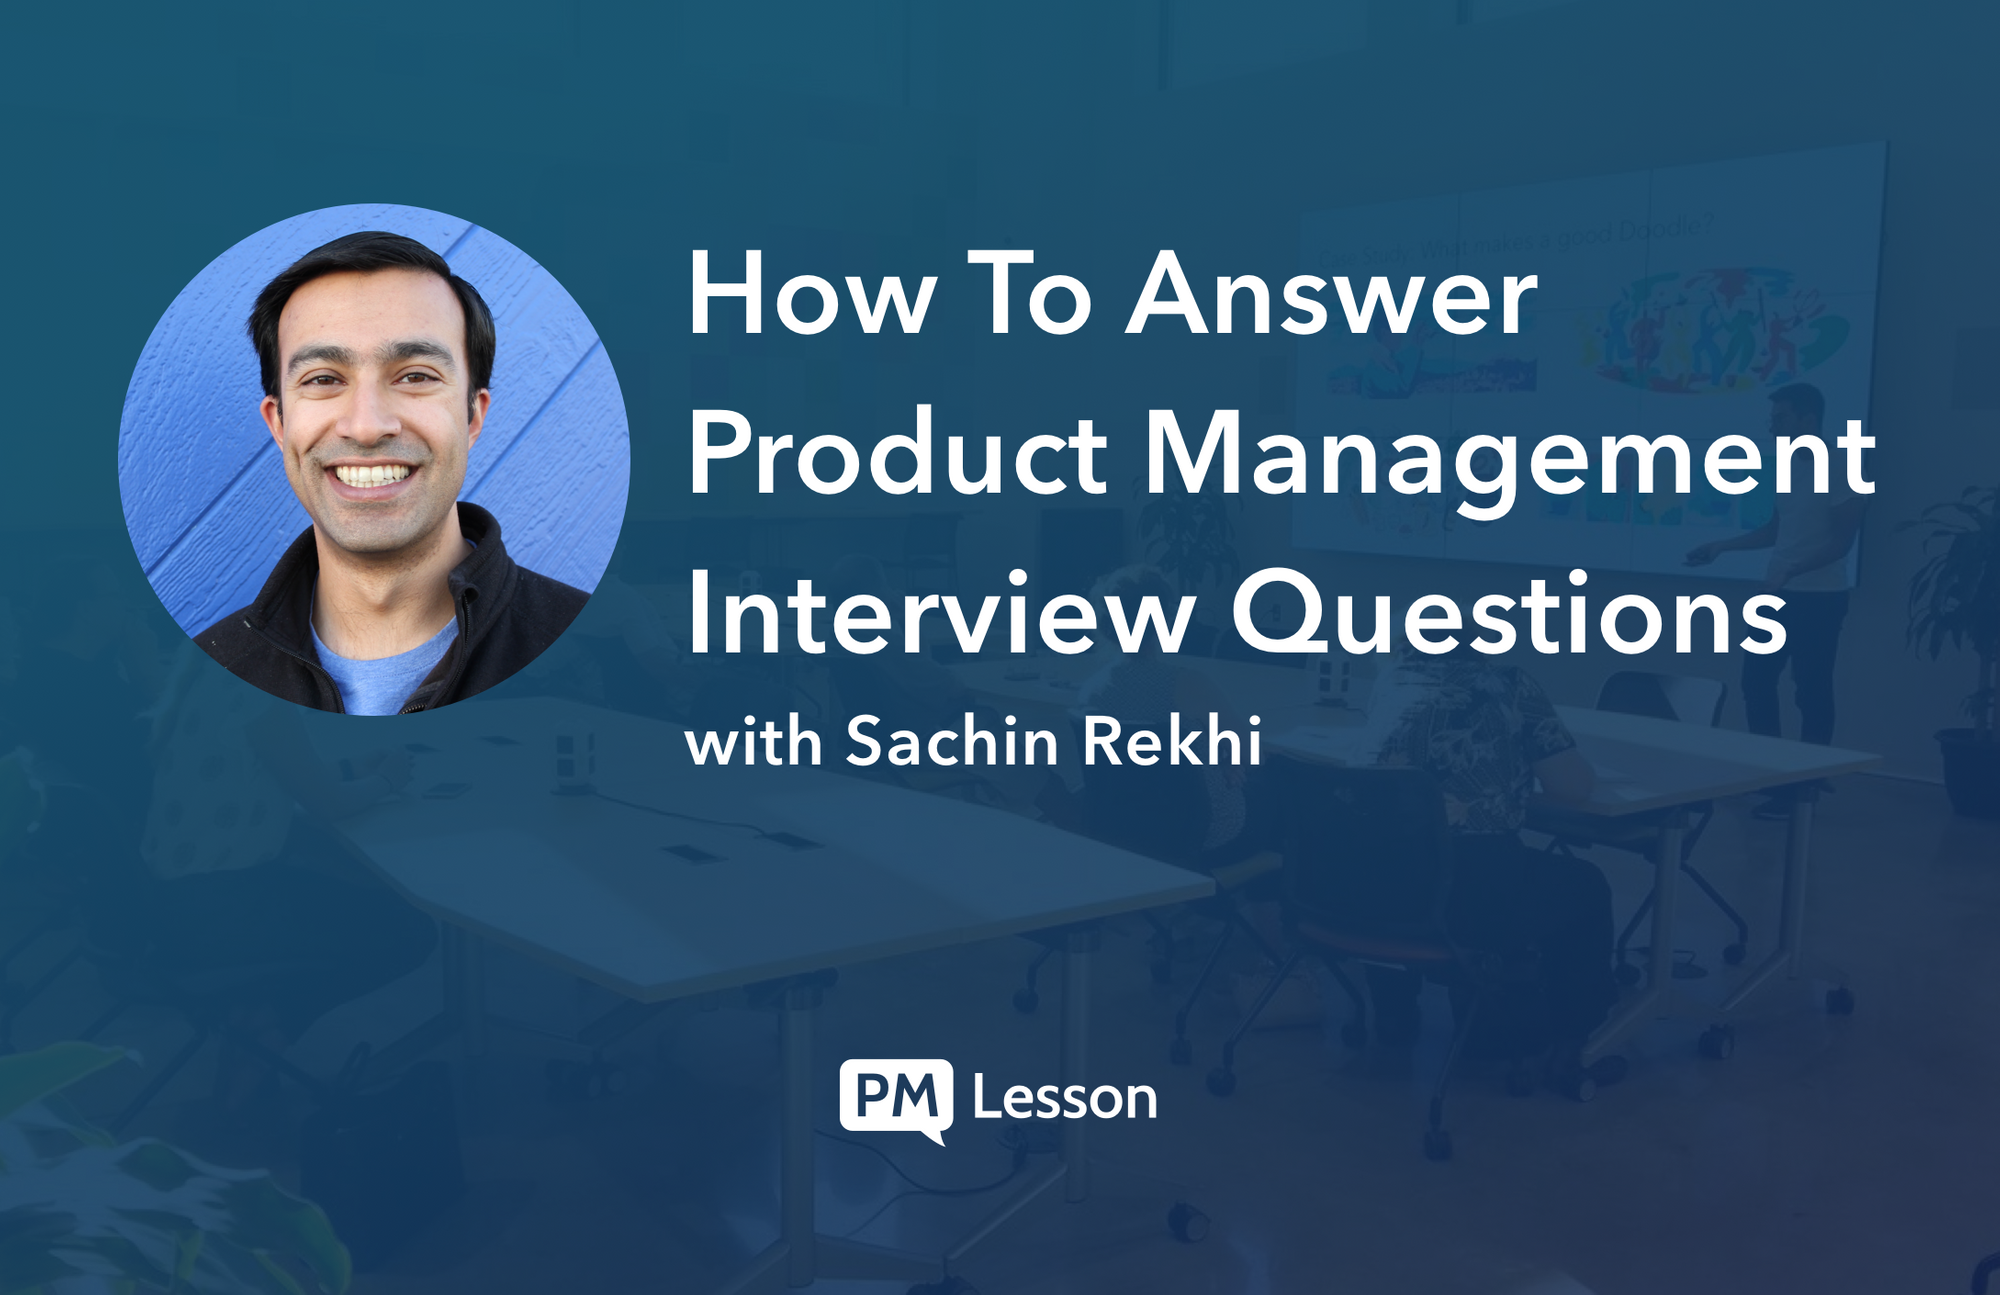 How To Answer Product Management Interview Questions—Sachin